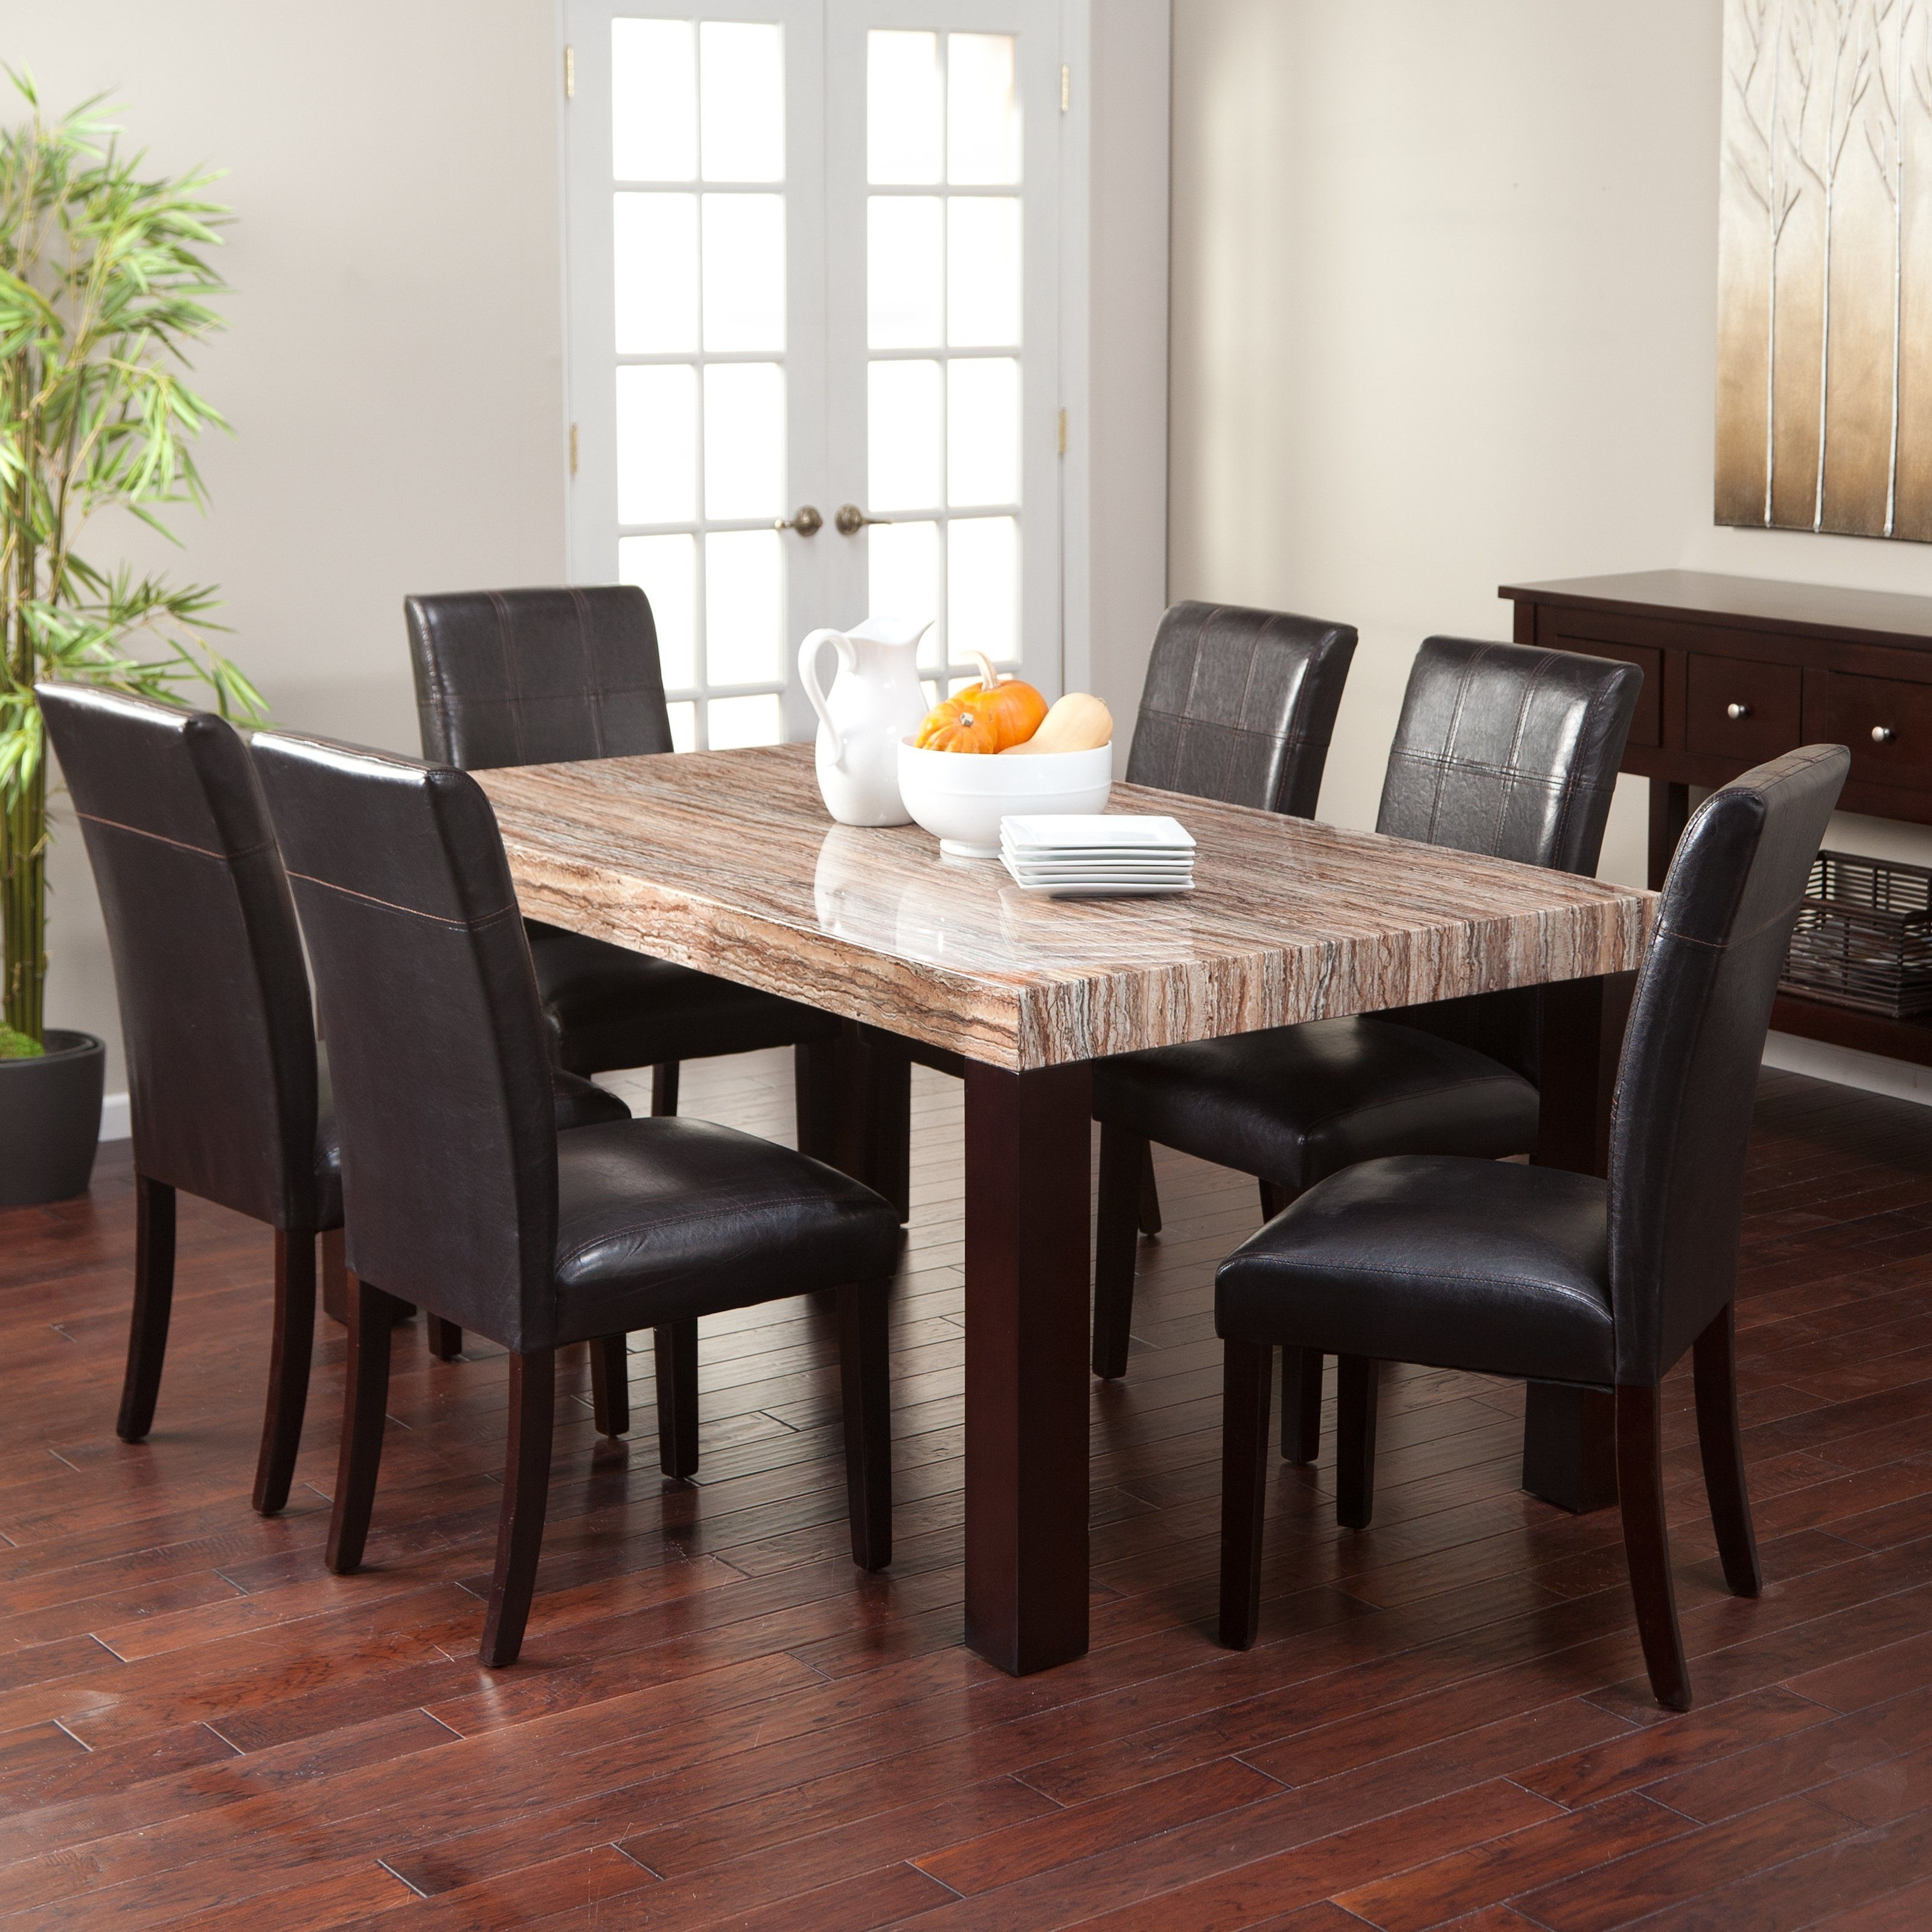 Parquet 7 Piece Dining Sets Throughout Trendy Carmine 7 Piece Dining Table Set – With Its Creamy Caramel Colored (Gallery 6 of 25)